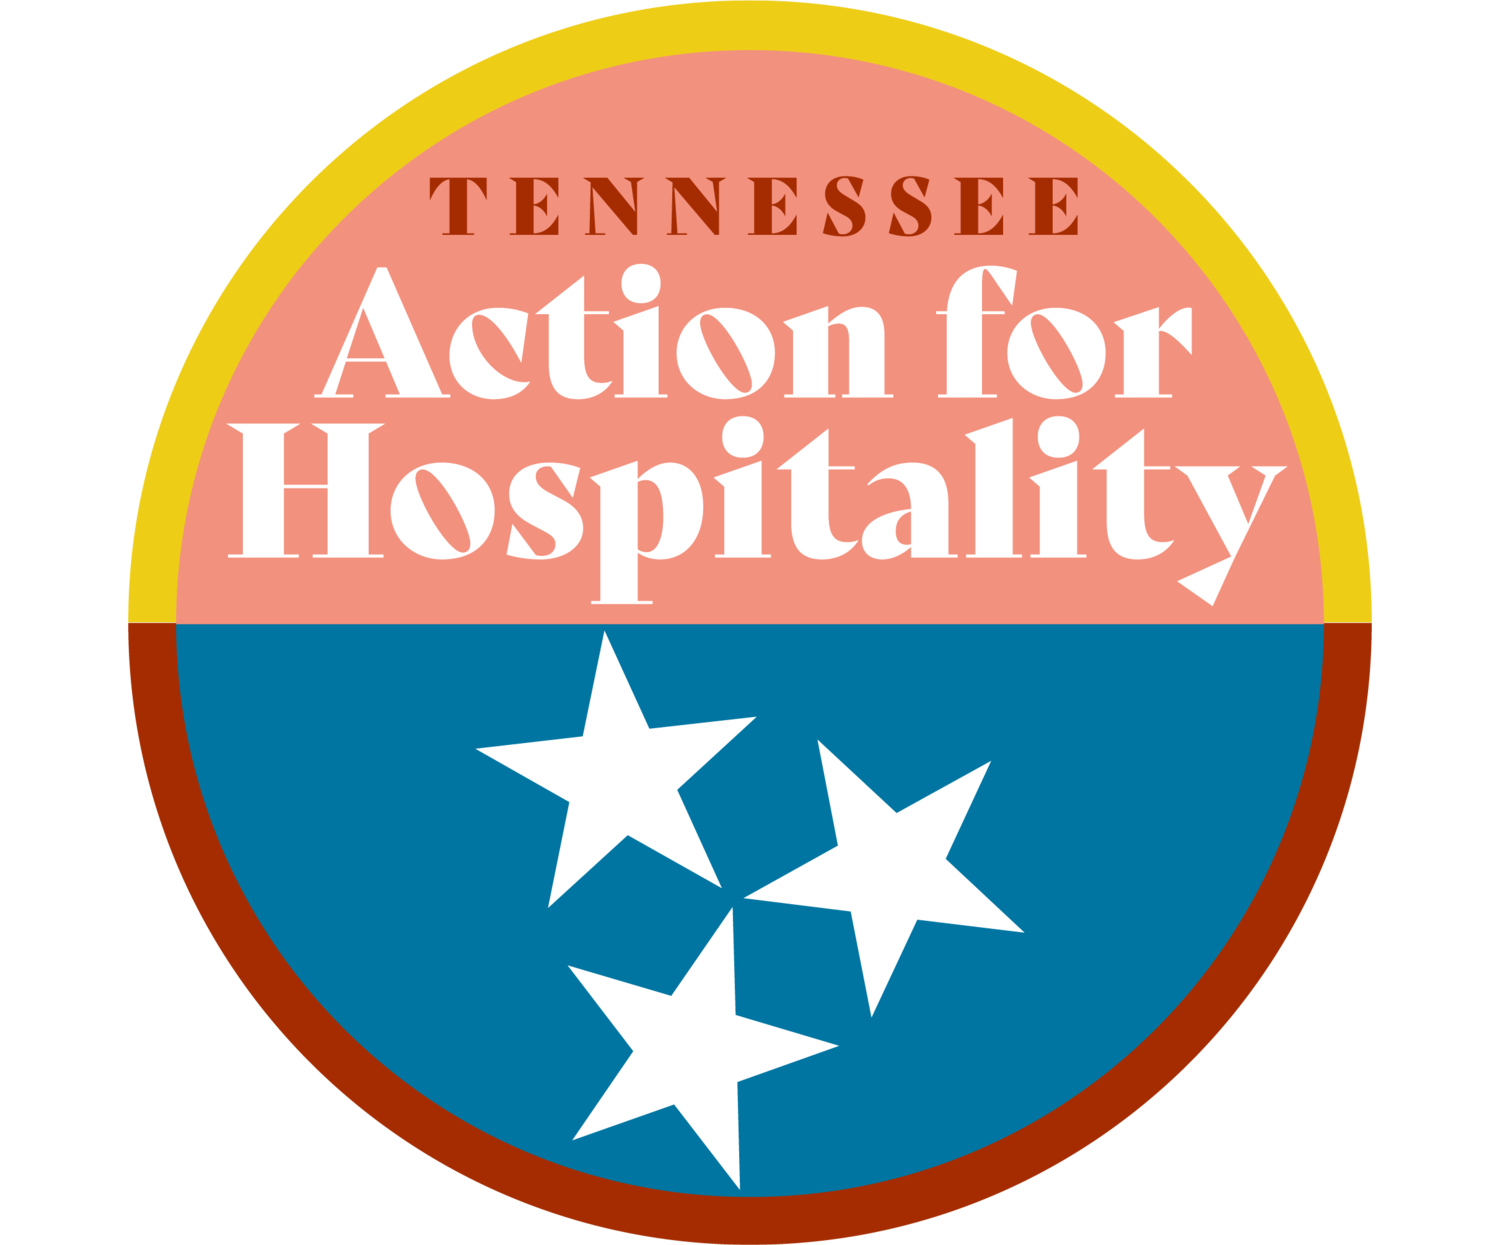 Tennessee Action for Hospitality